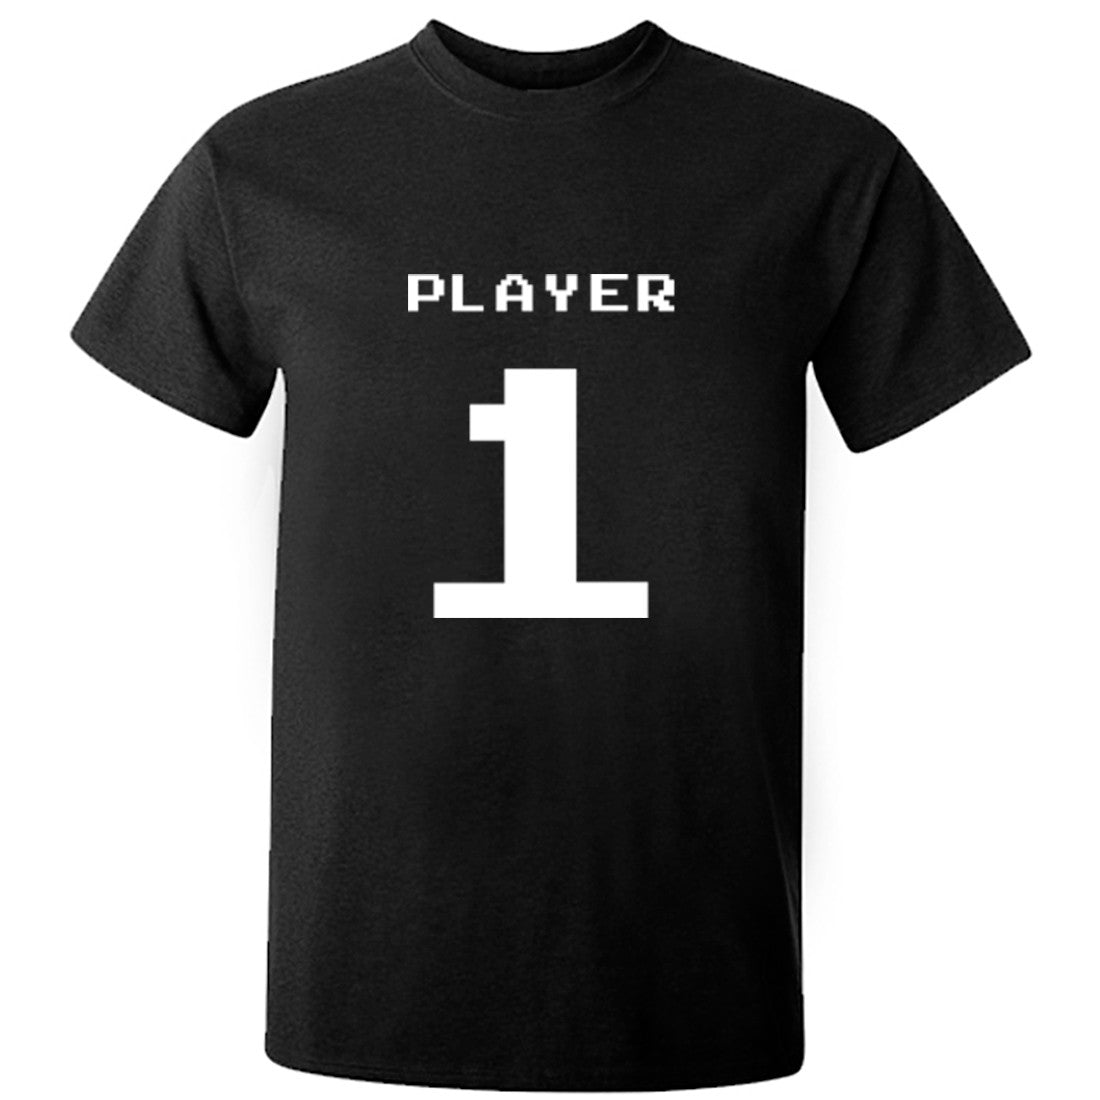 Player 1 Unisex Fit T-Shirt K0544 - Illustrated Identity Ltd.